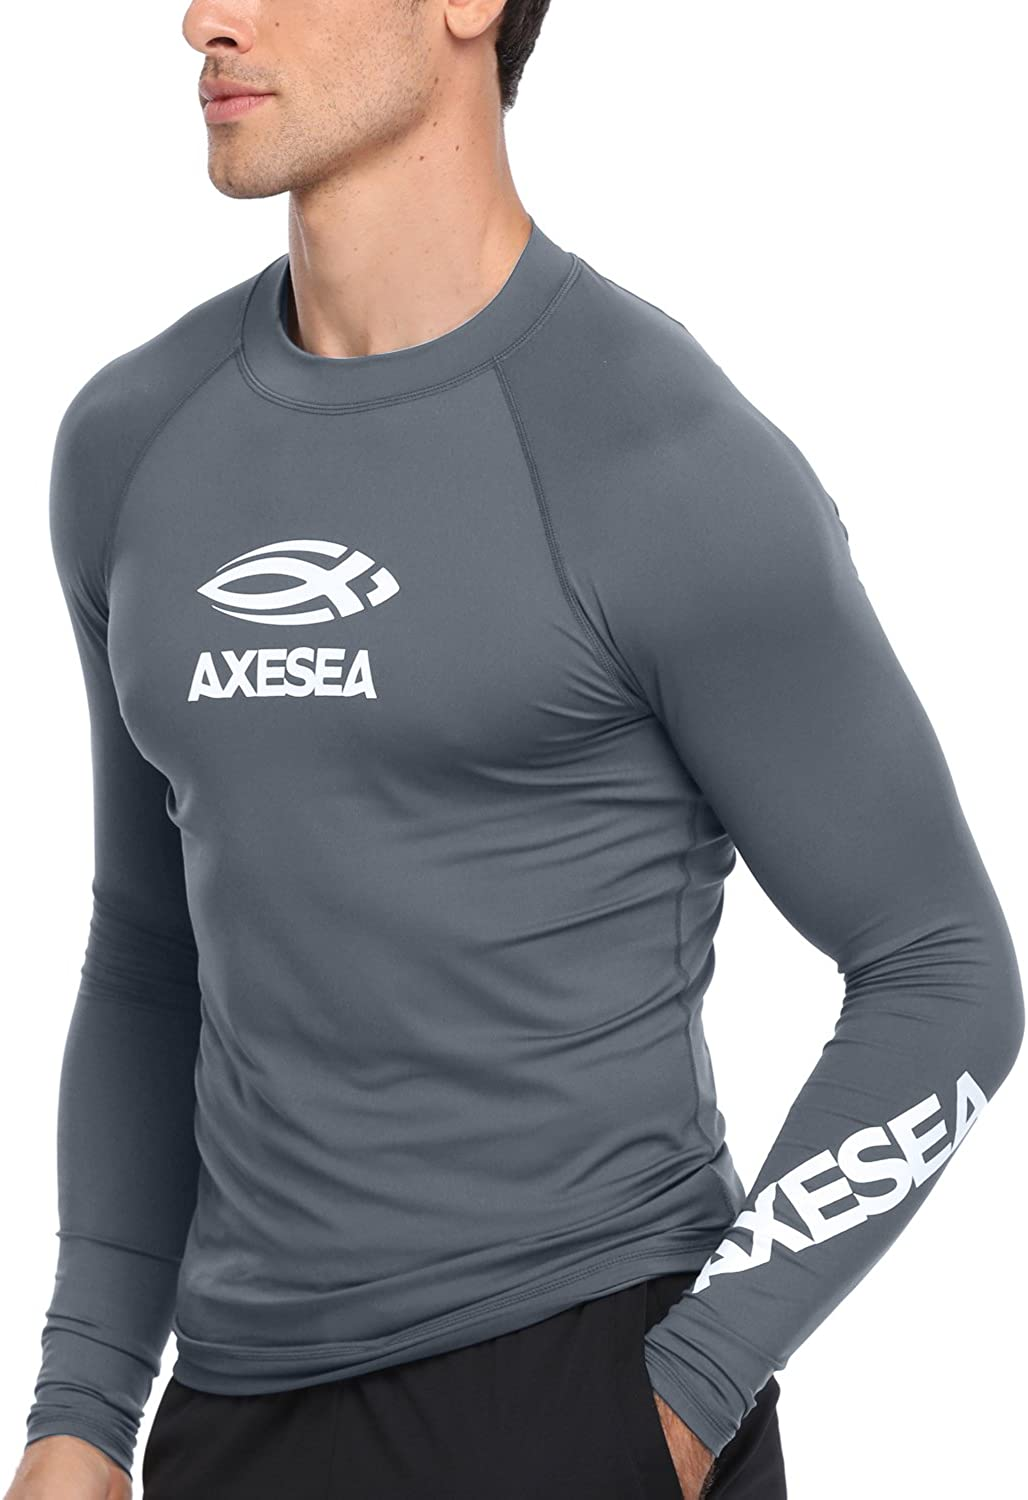 AXESEA Men Long Sleeve Rashguard UPF 50+ Rash Guard Swim Shirt Athletic Swim Tops